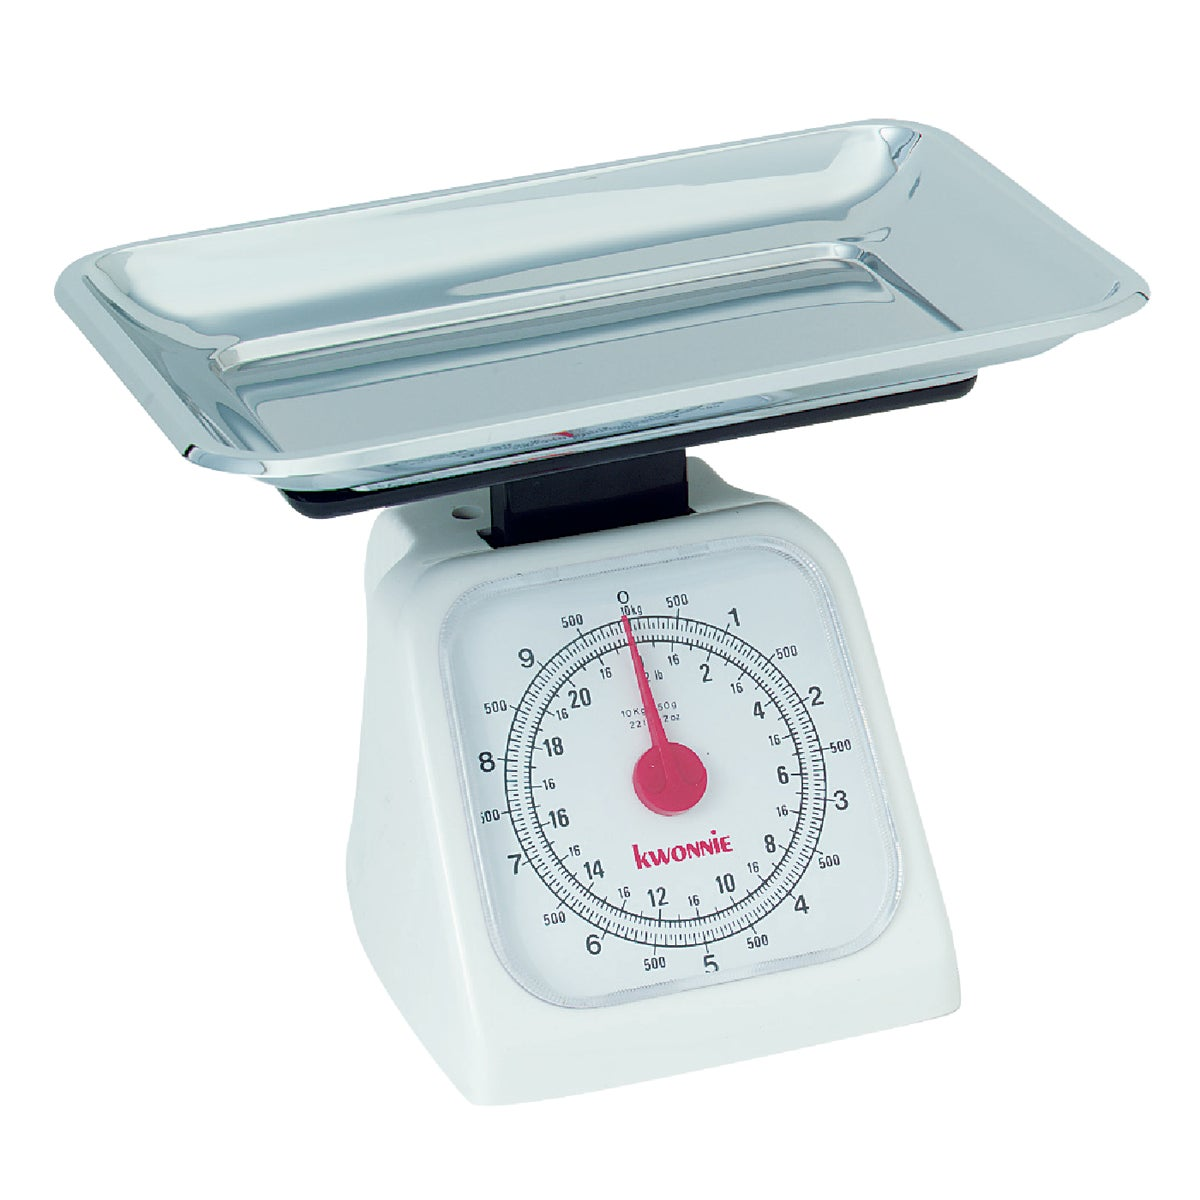 22LB FOOD SCALE